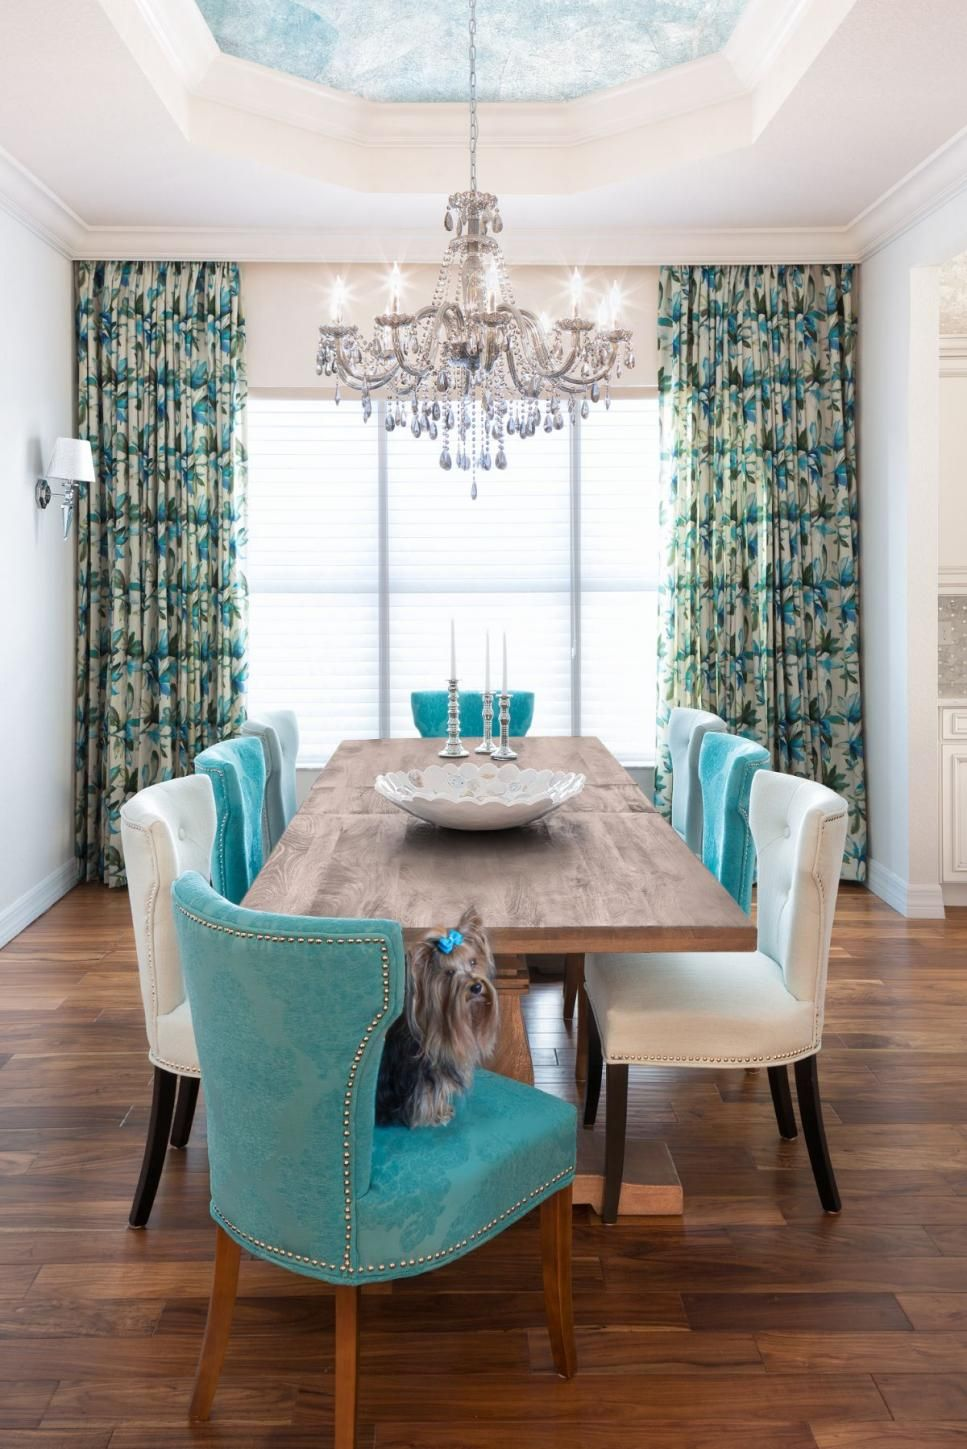 Alternating Turquoise And White Chairs Surround A Long Rustic Dining Table While A Sophisticated C Turquoise Room Turquoise Dining Room Living Room Turquoise